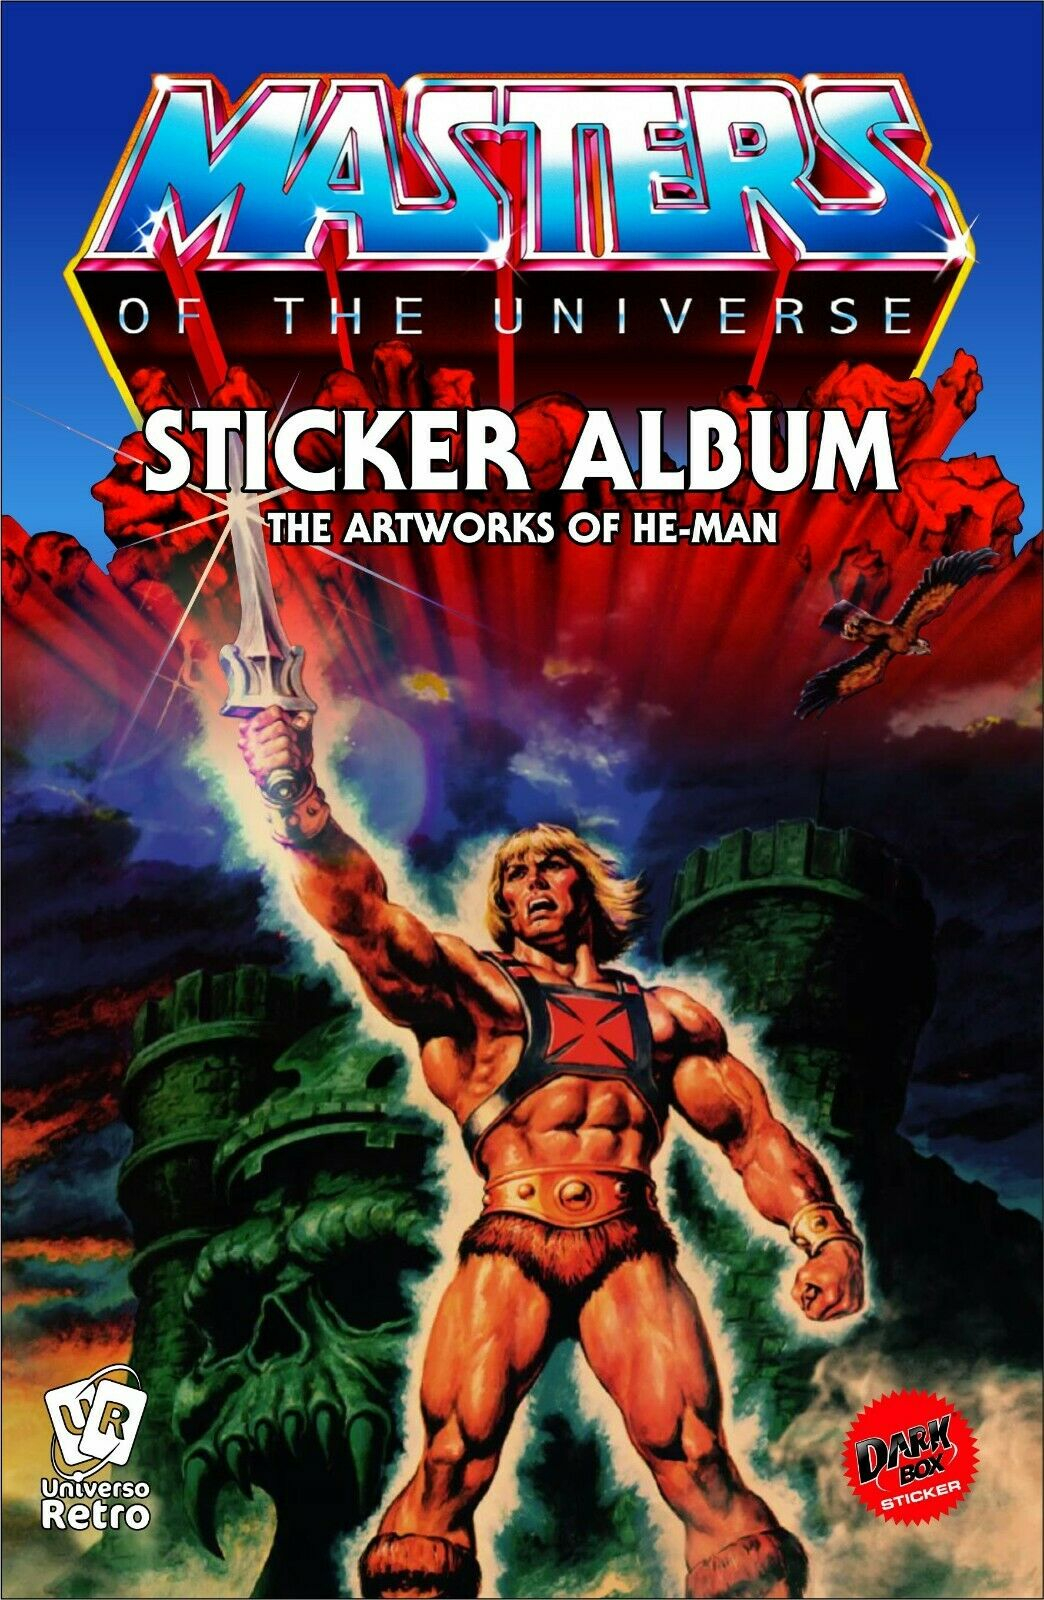 Stickers Album MASTERS OF THE UNIVERSE by Universo Retrò